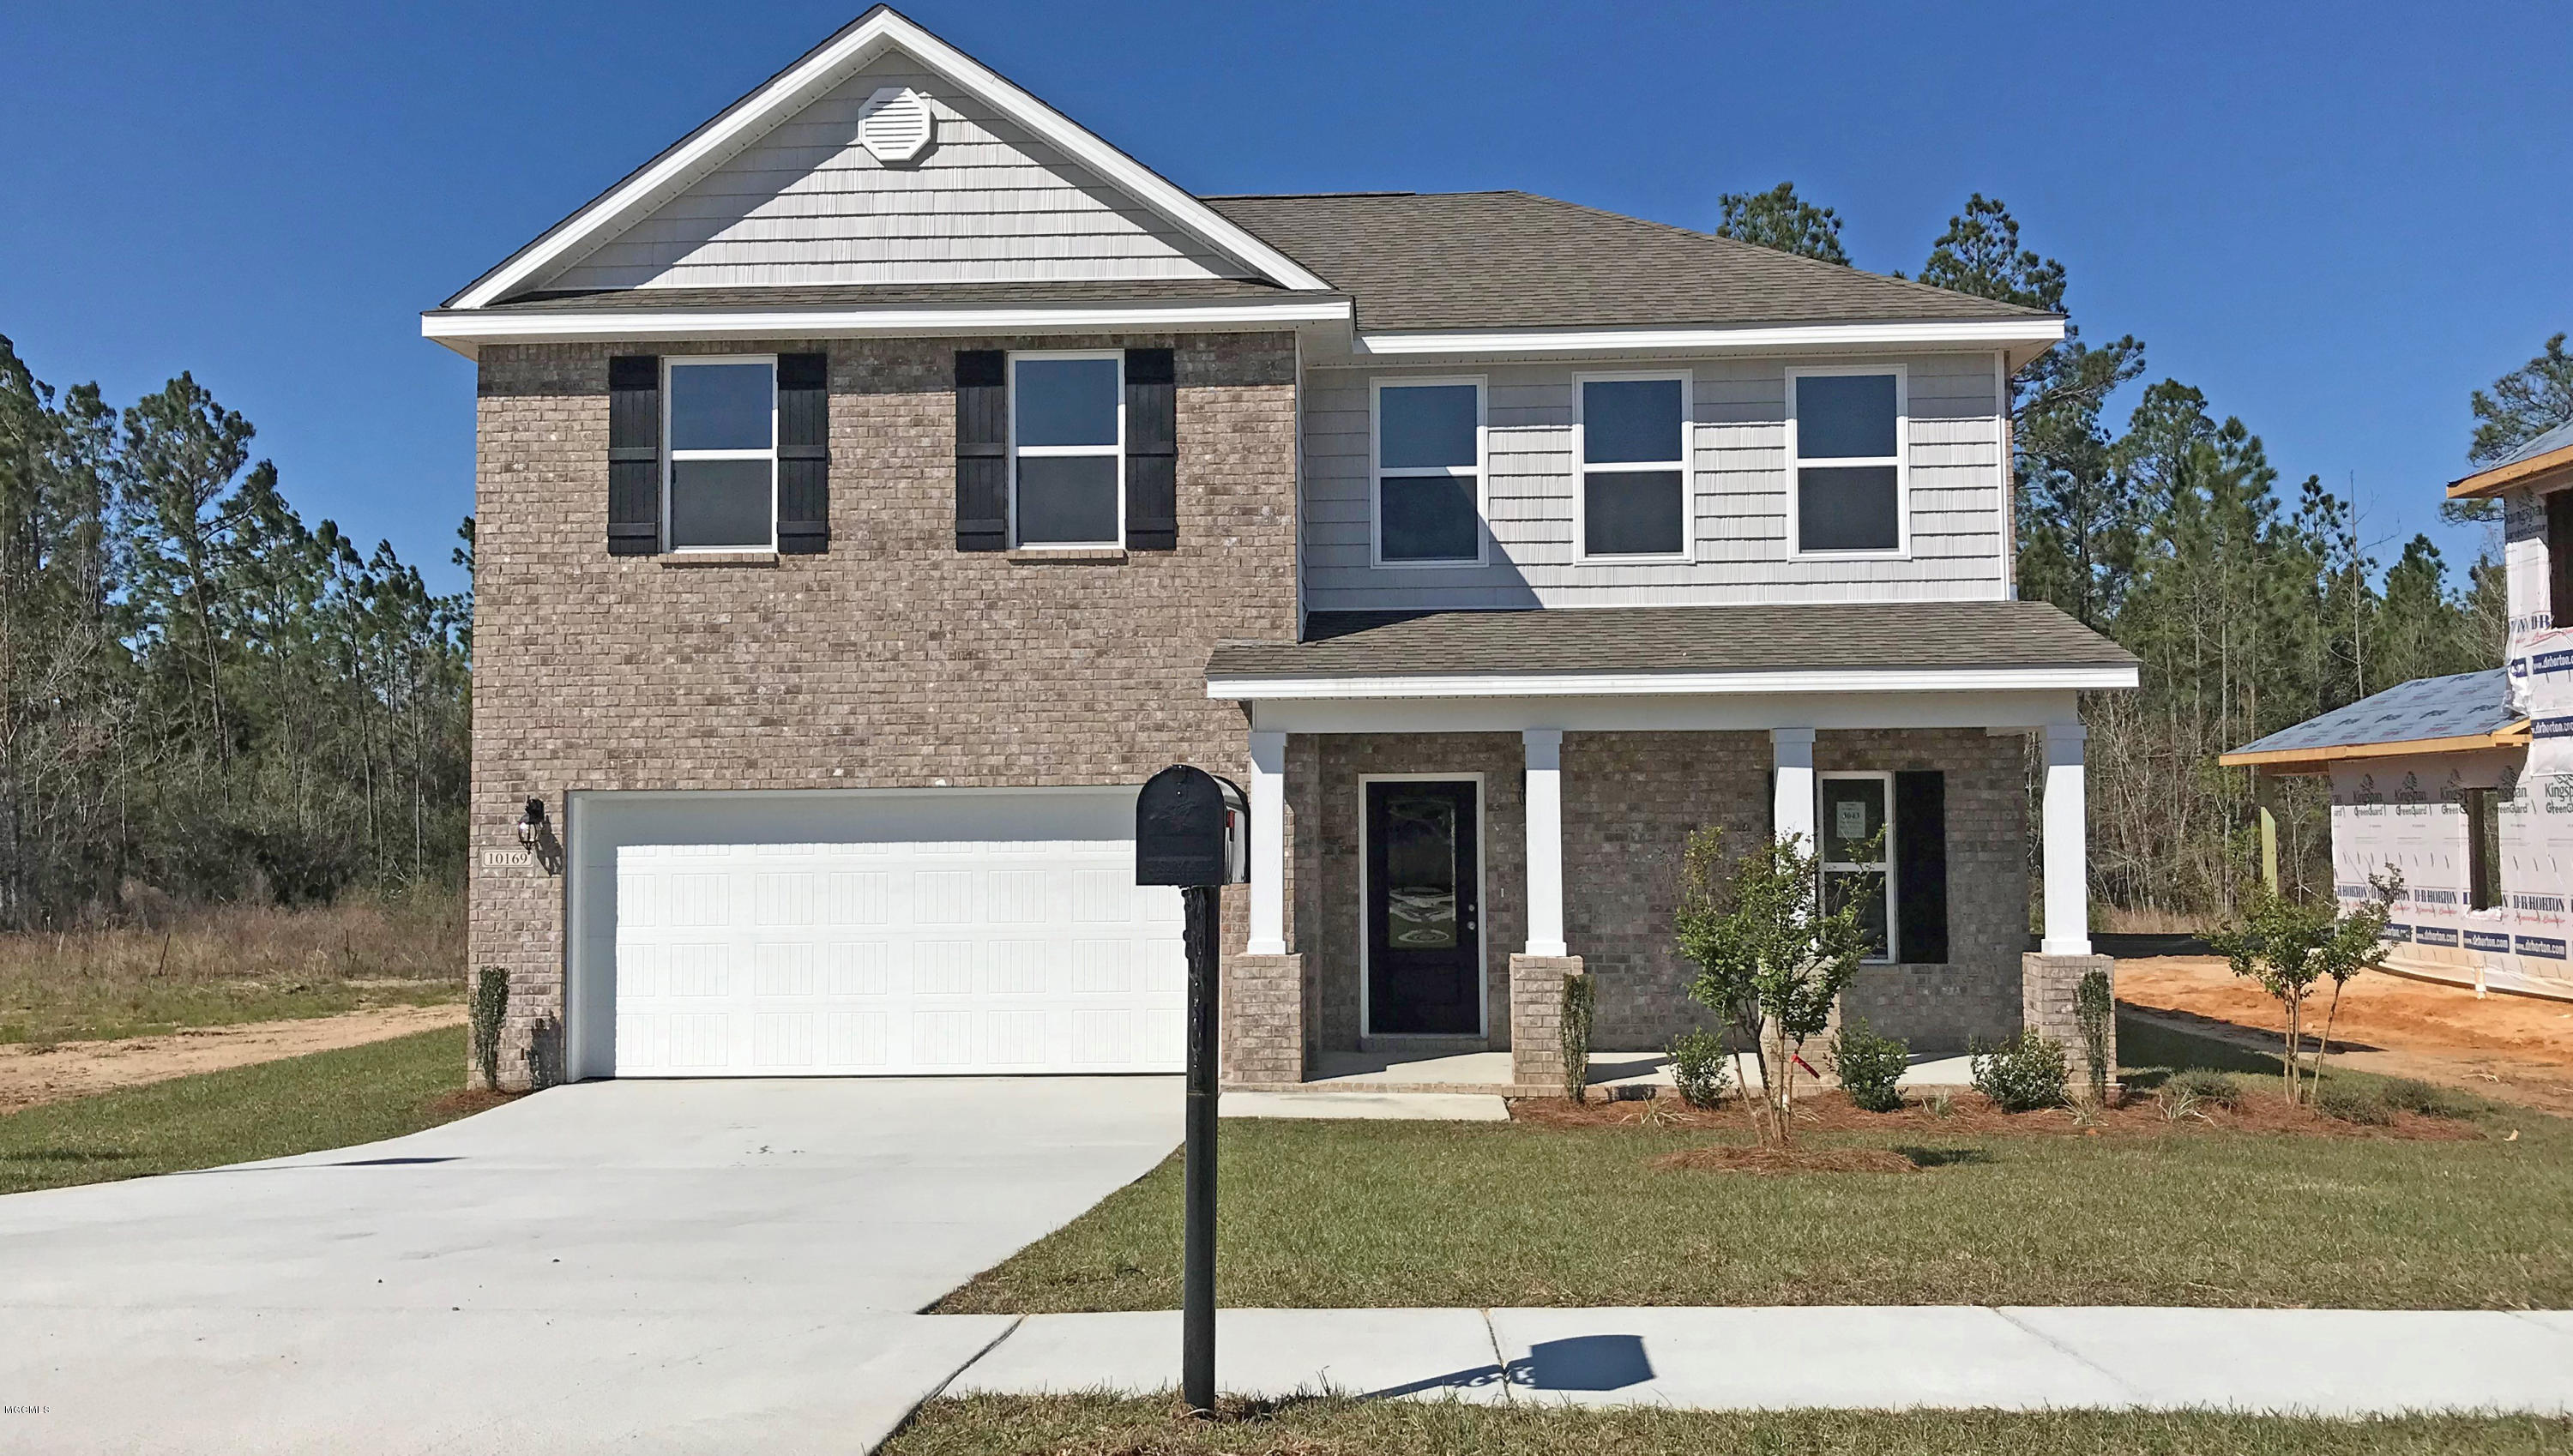 10514 Sweet Bay Dr,Gulfport,Mississippi 39503,5 Bedrooms Bedrooms,2 BathroomsBathrooms,Single-family,Sweet Bay,340557